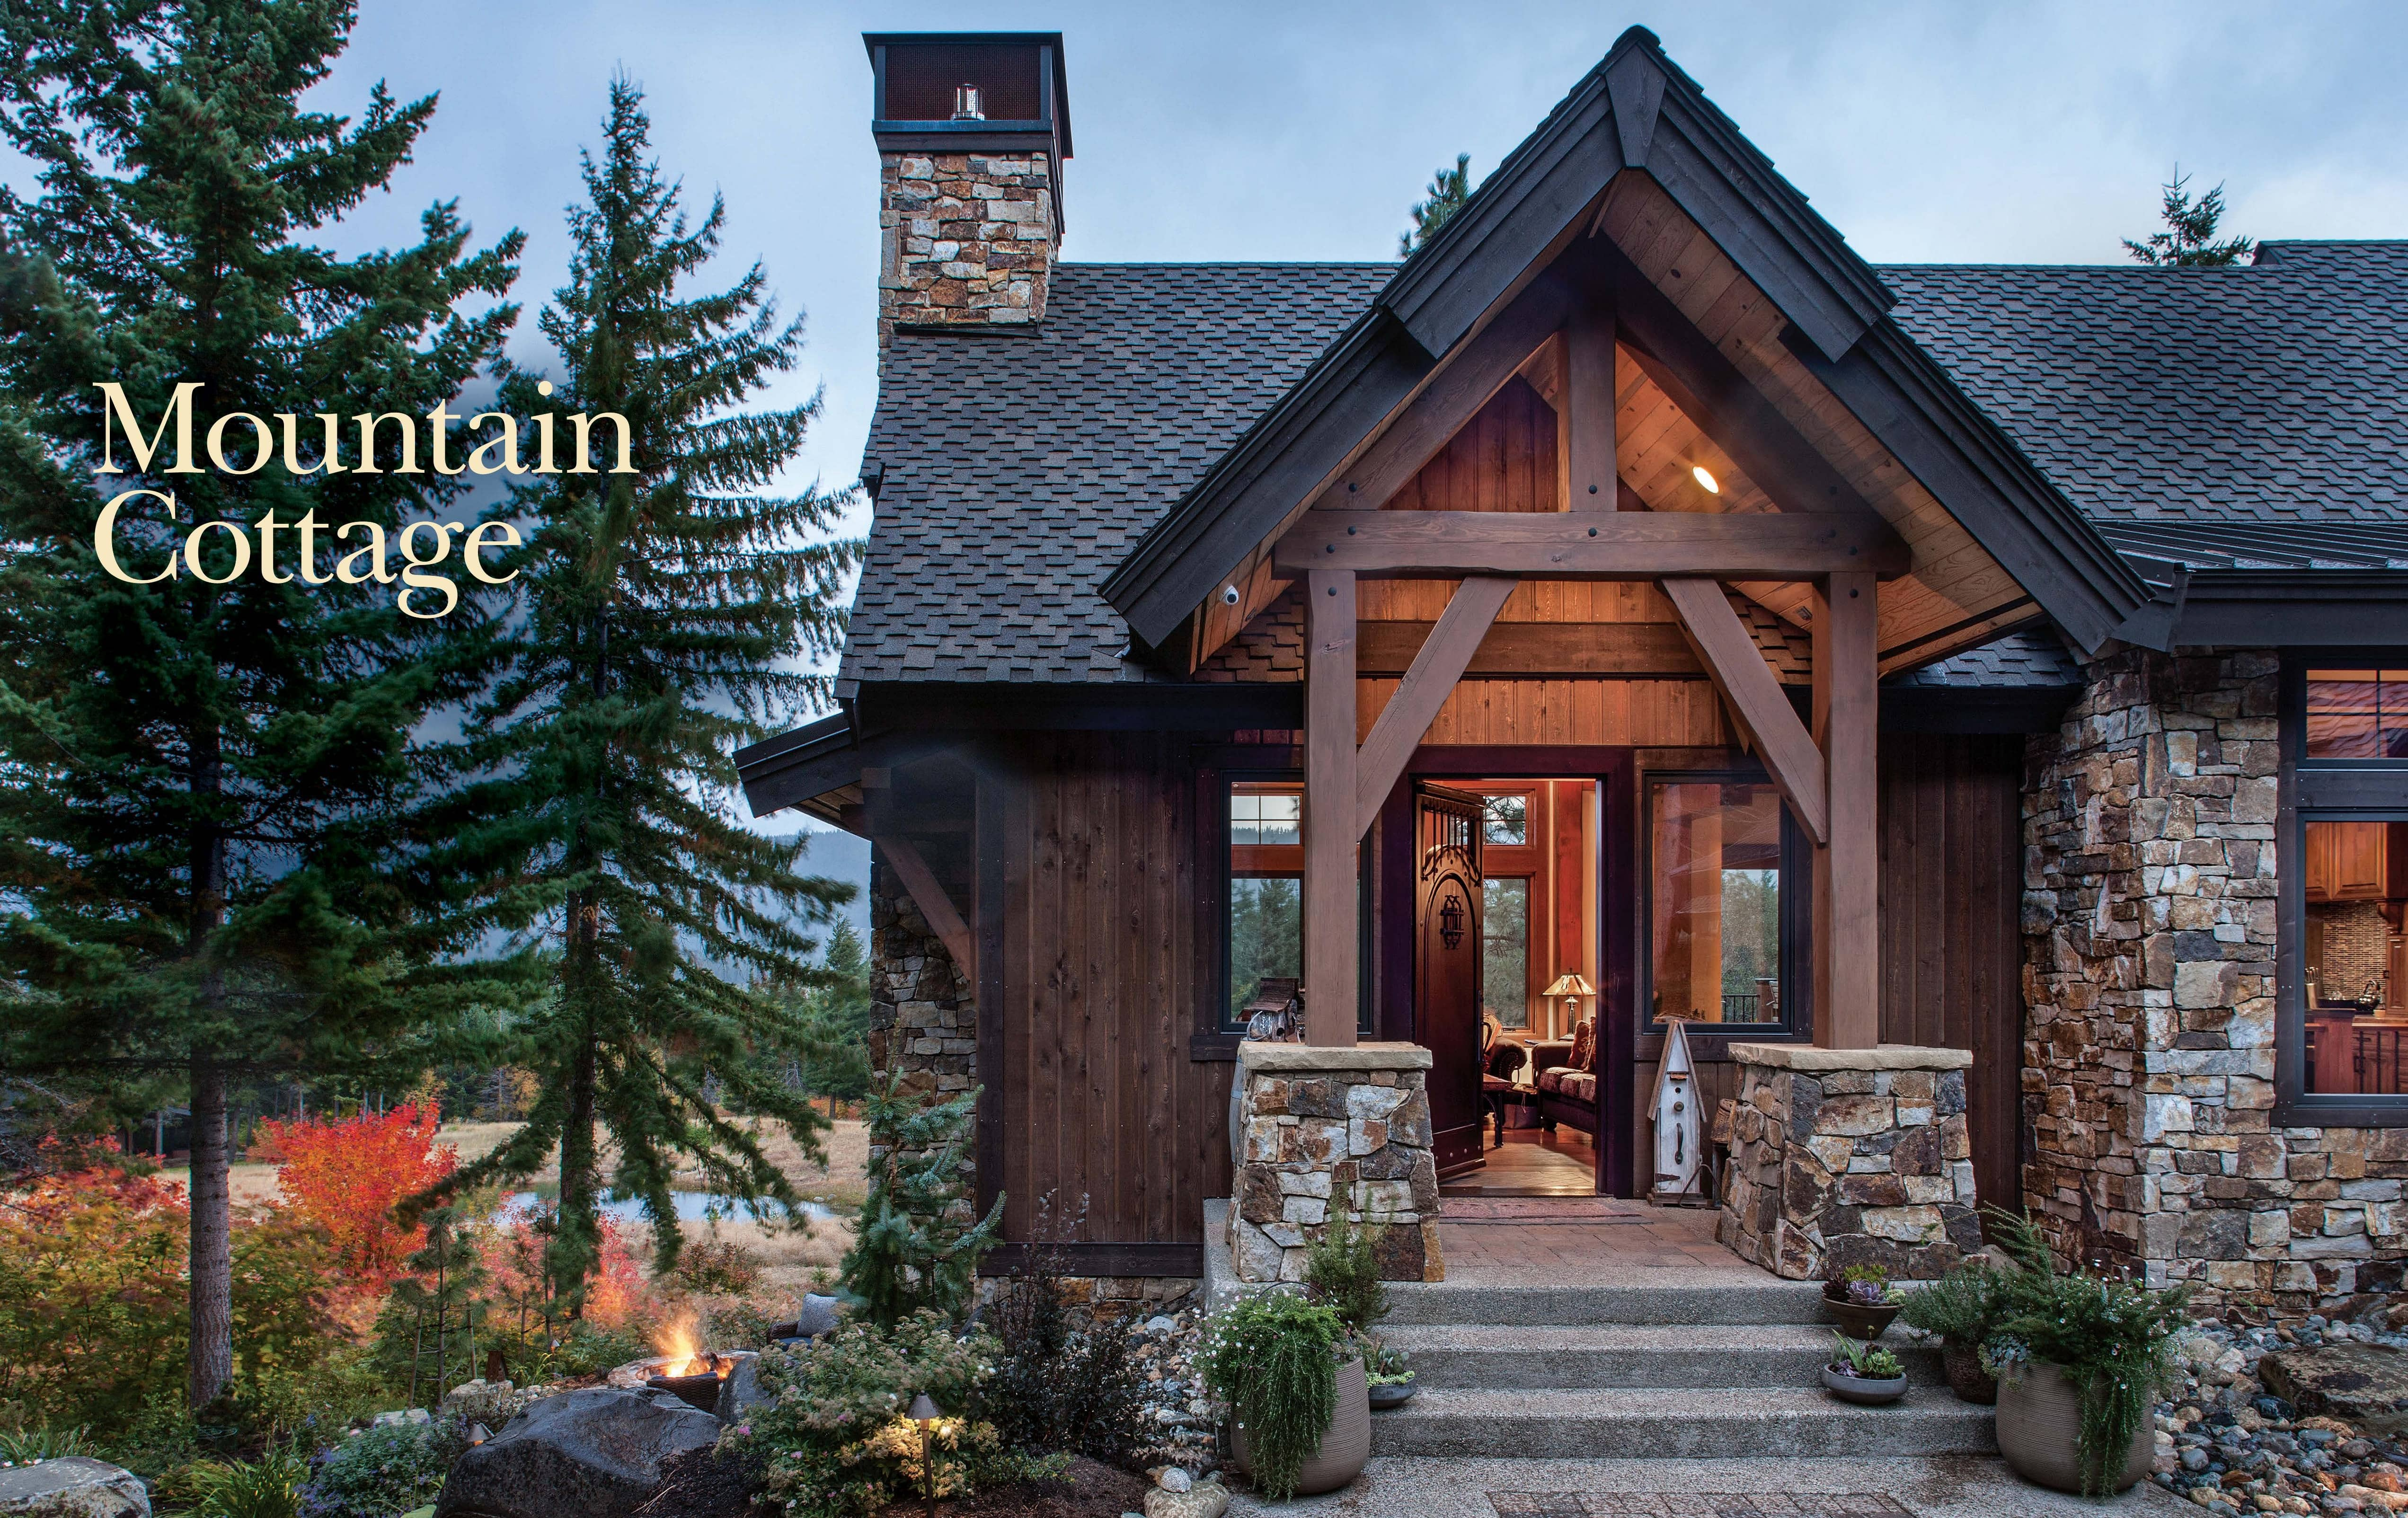 Mountain Cottage Masterpiece 30 Timber Home Living October 2019 Masterpiece